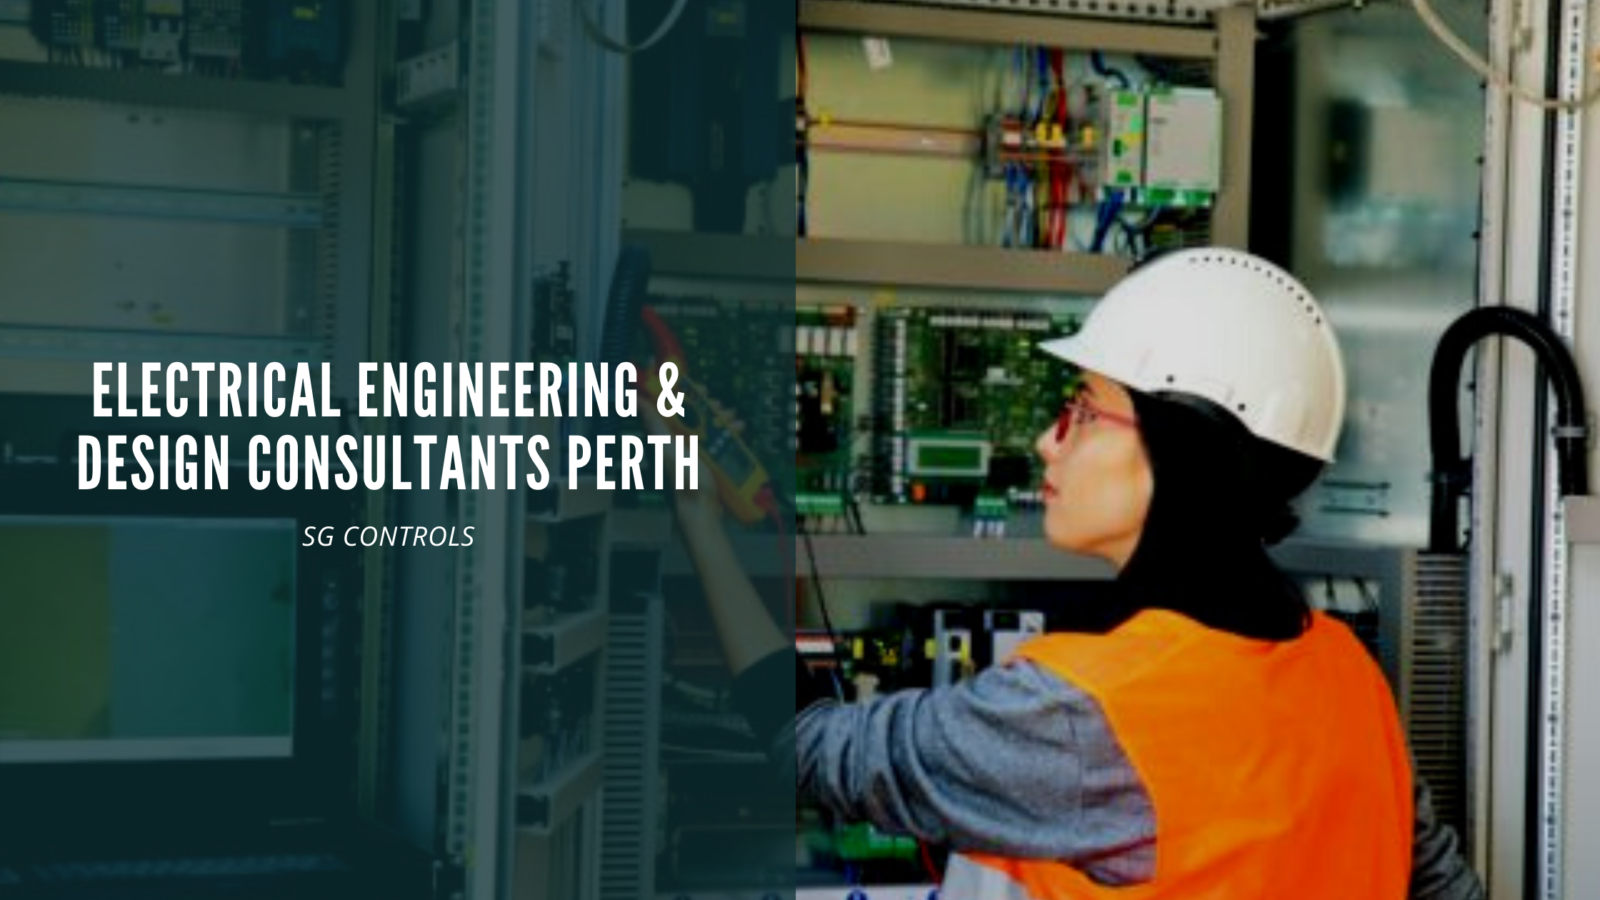 Electrical Engineering and Design Consultants Perth